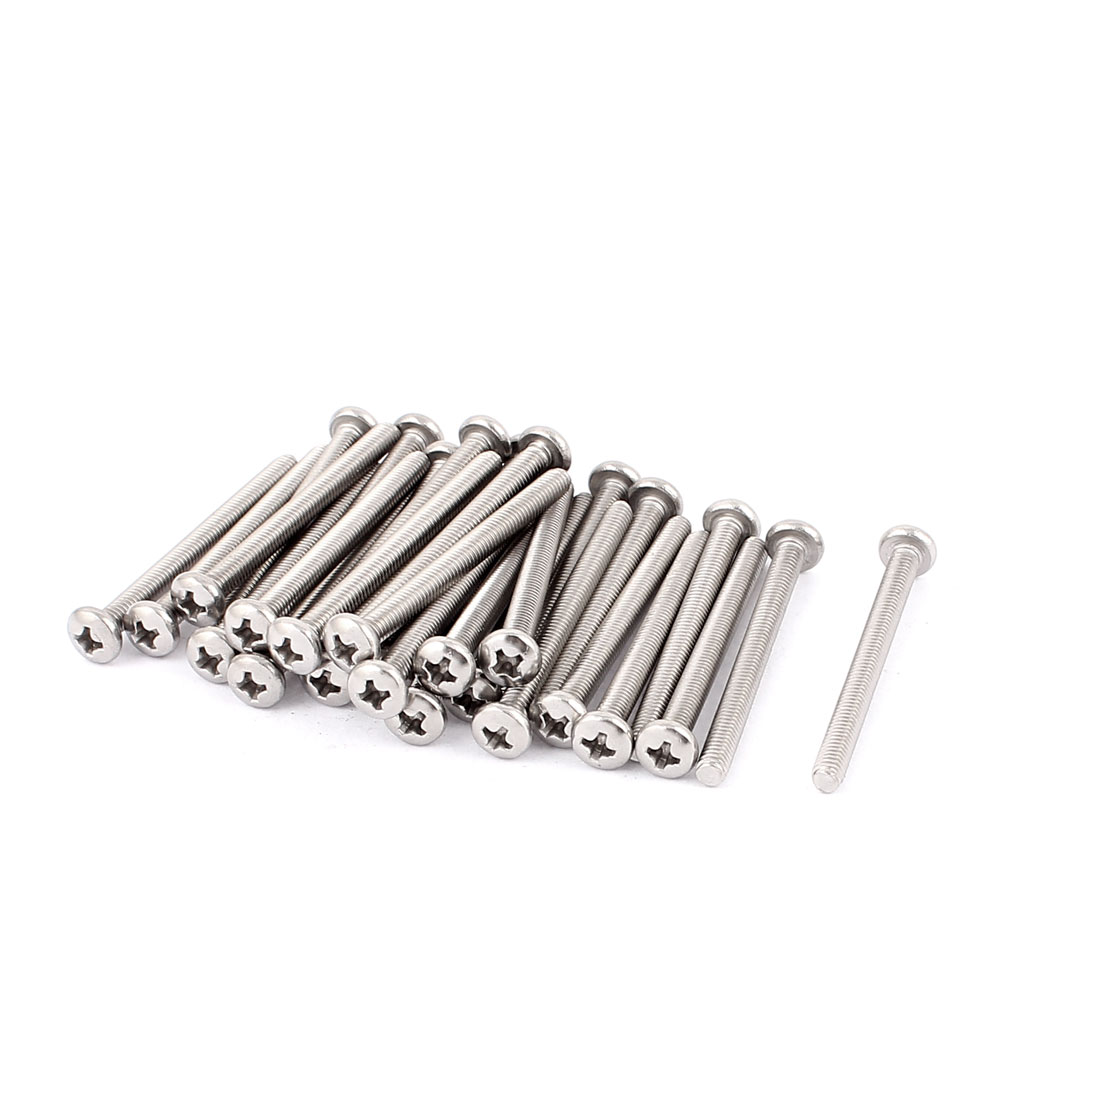 M4x45mm 304 Stainless Steel Round Head Phillips Mounting Screws 30pcs